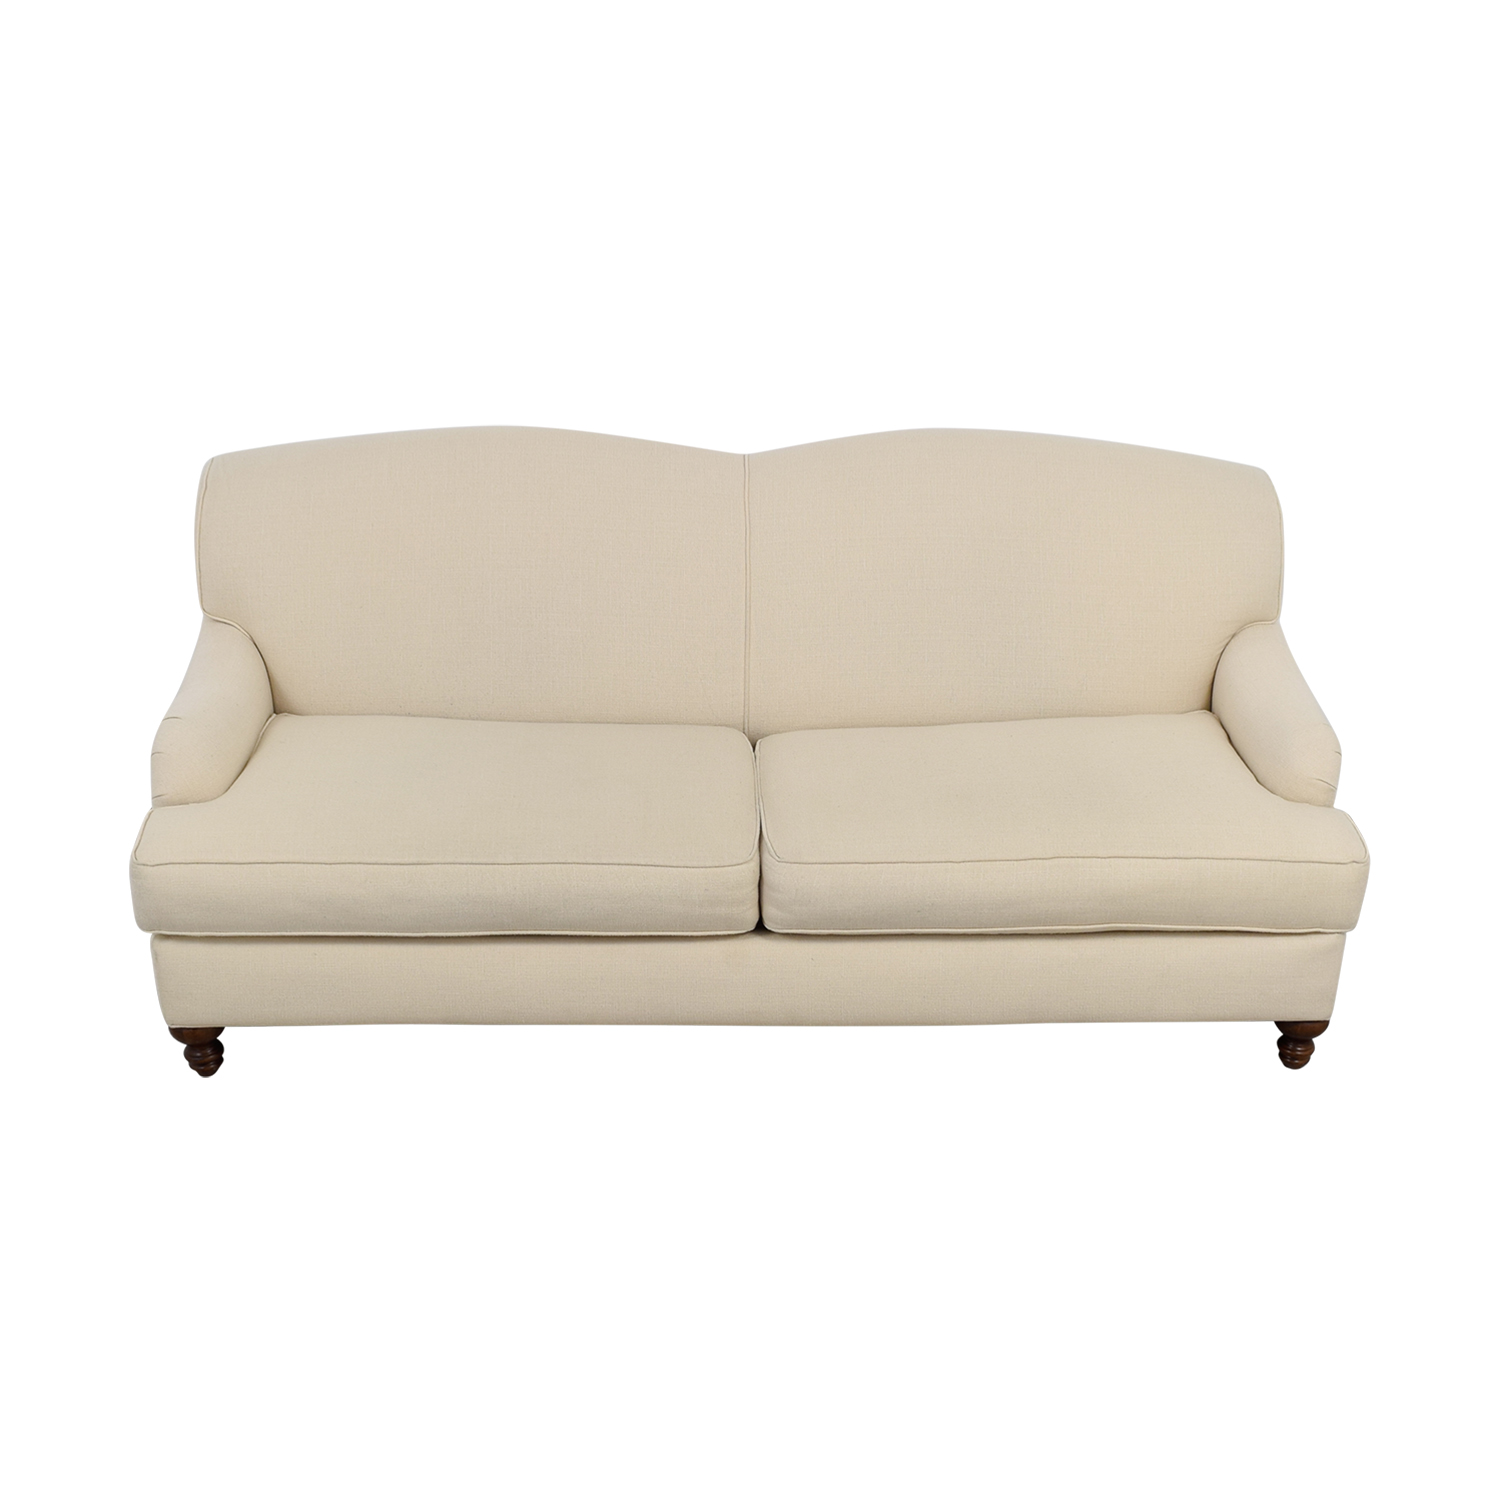 Bob Mills Furniture Bob Mills Furniture Cream Two-Cushion Sofa coupon